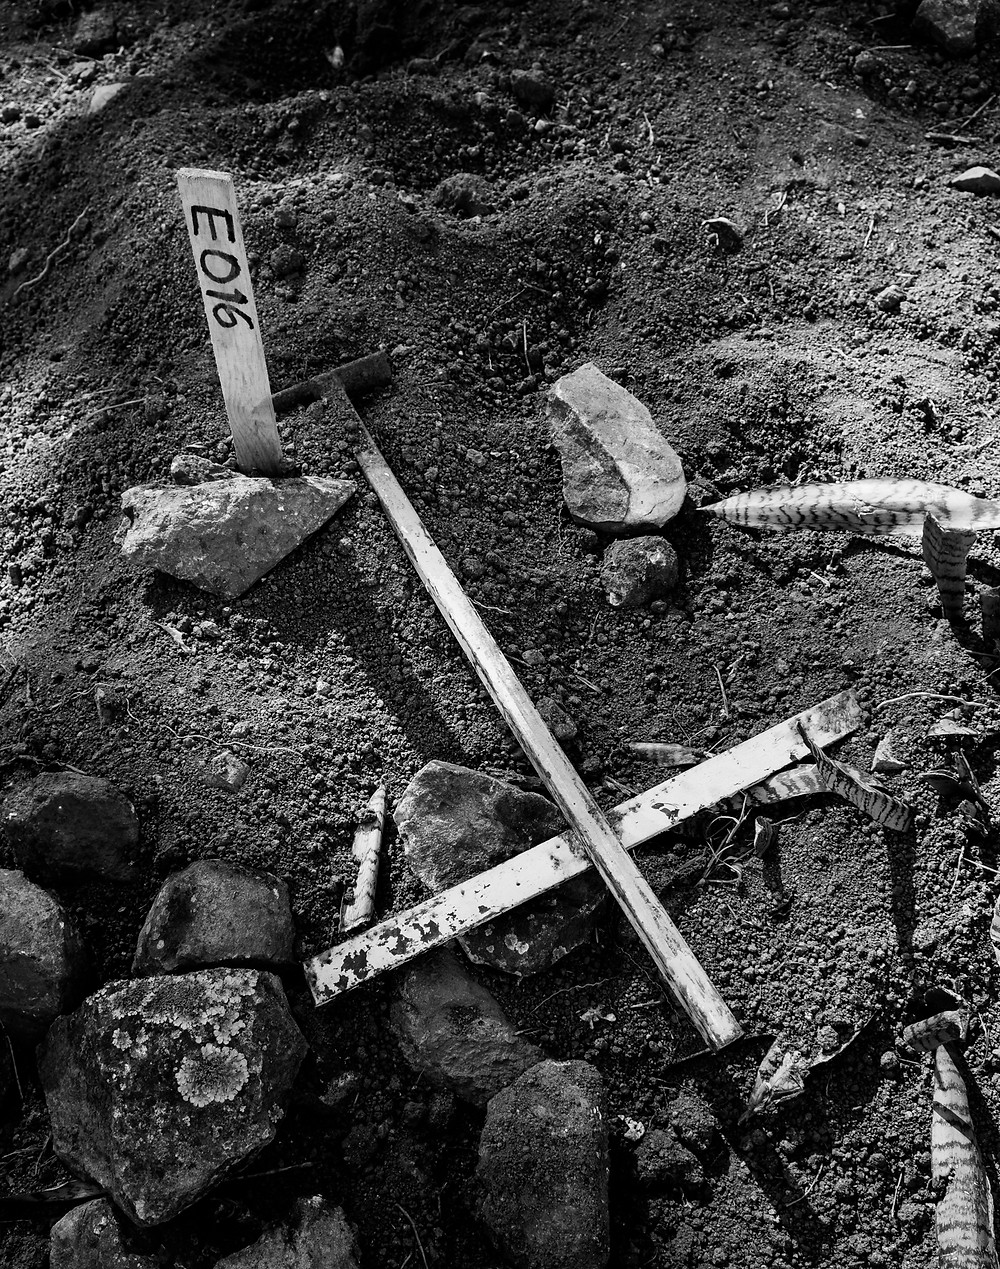 A stick with a number marks an exhumed grave in Azacualpa. Photo: Louis Bockner Photography